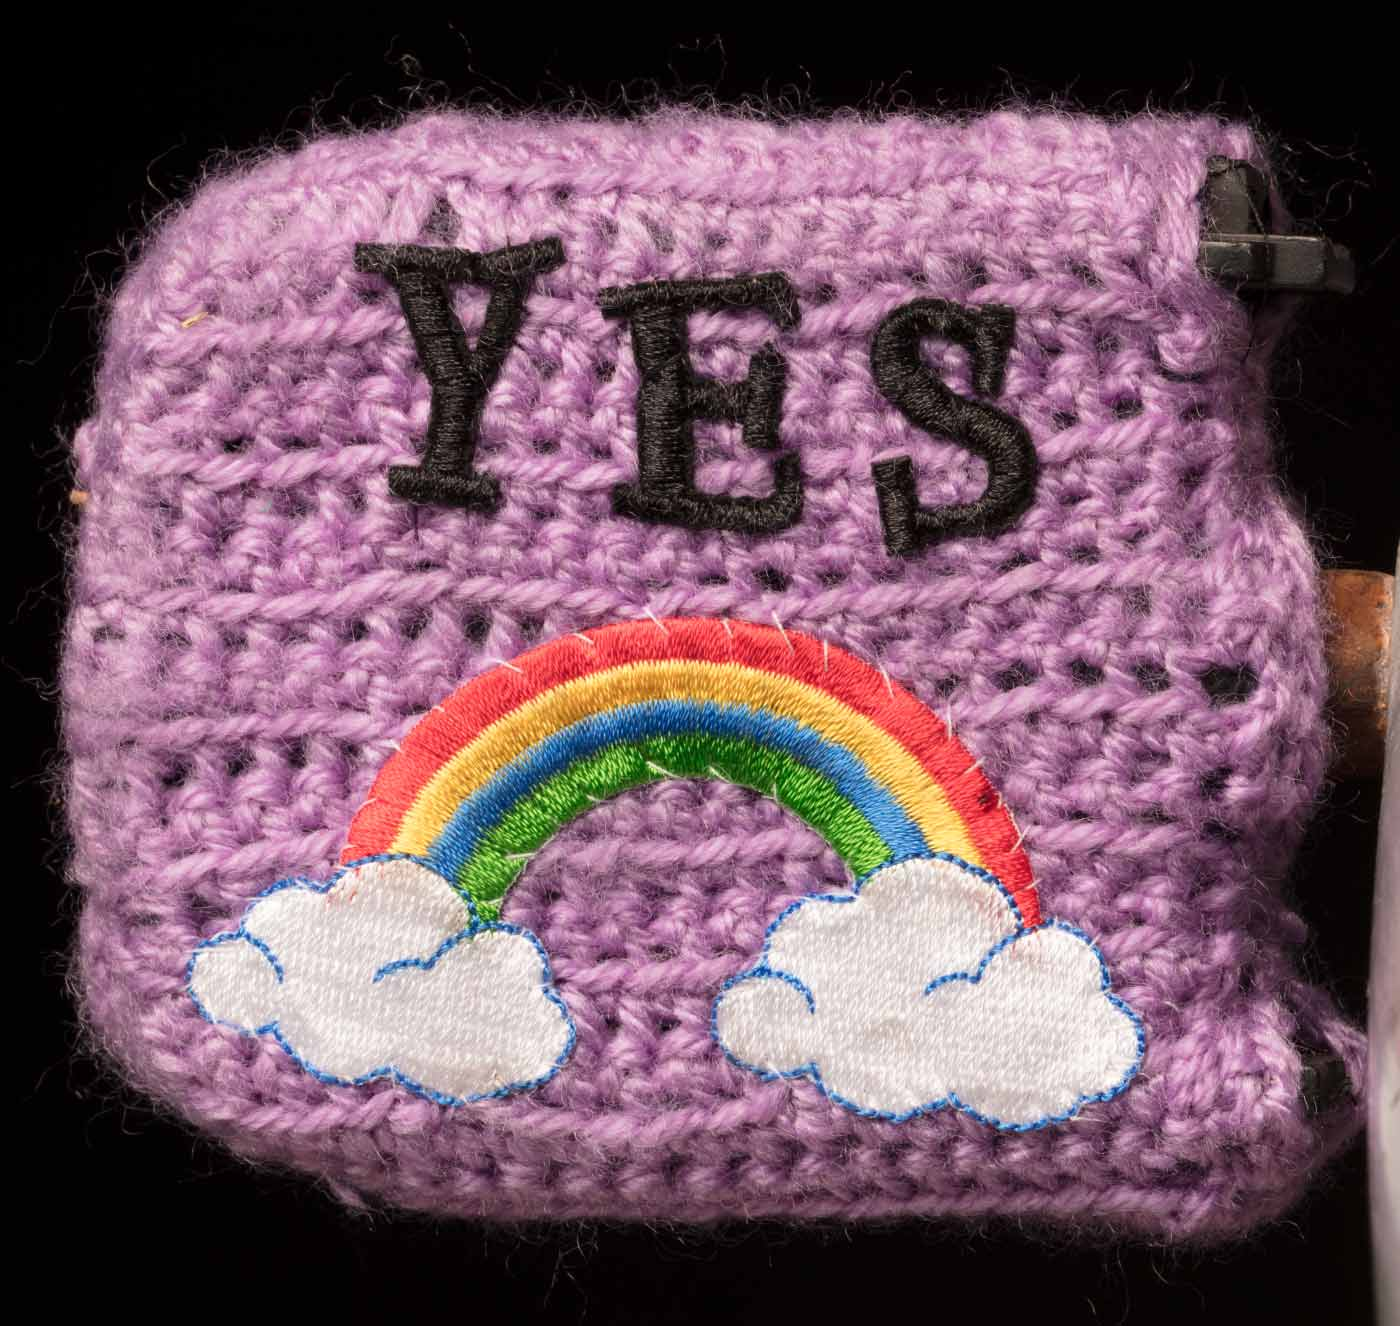 Studio photo of richly decorated pushbike pedal with the word 'YES' embroidered above an embroidered rainbow motif. - click to view larger image